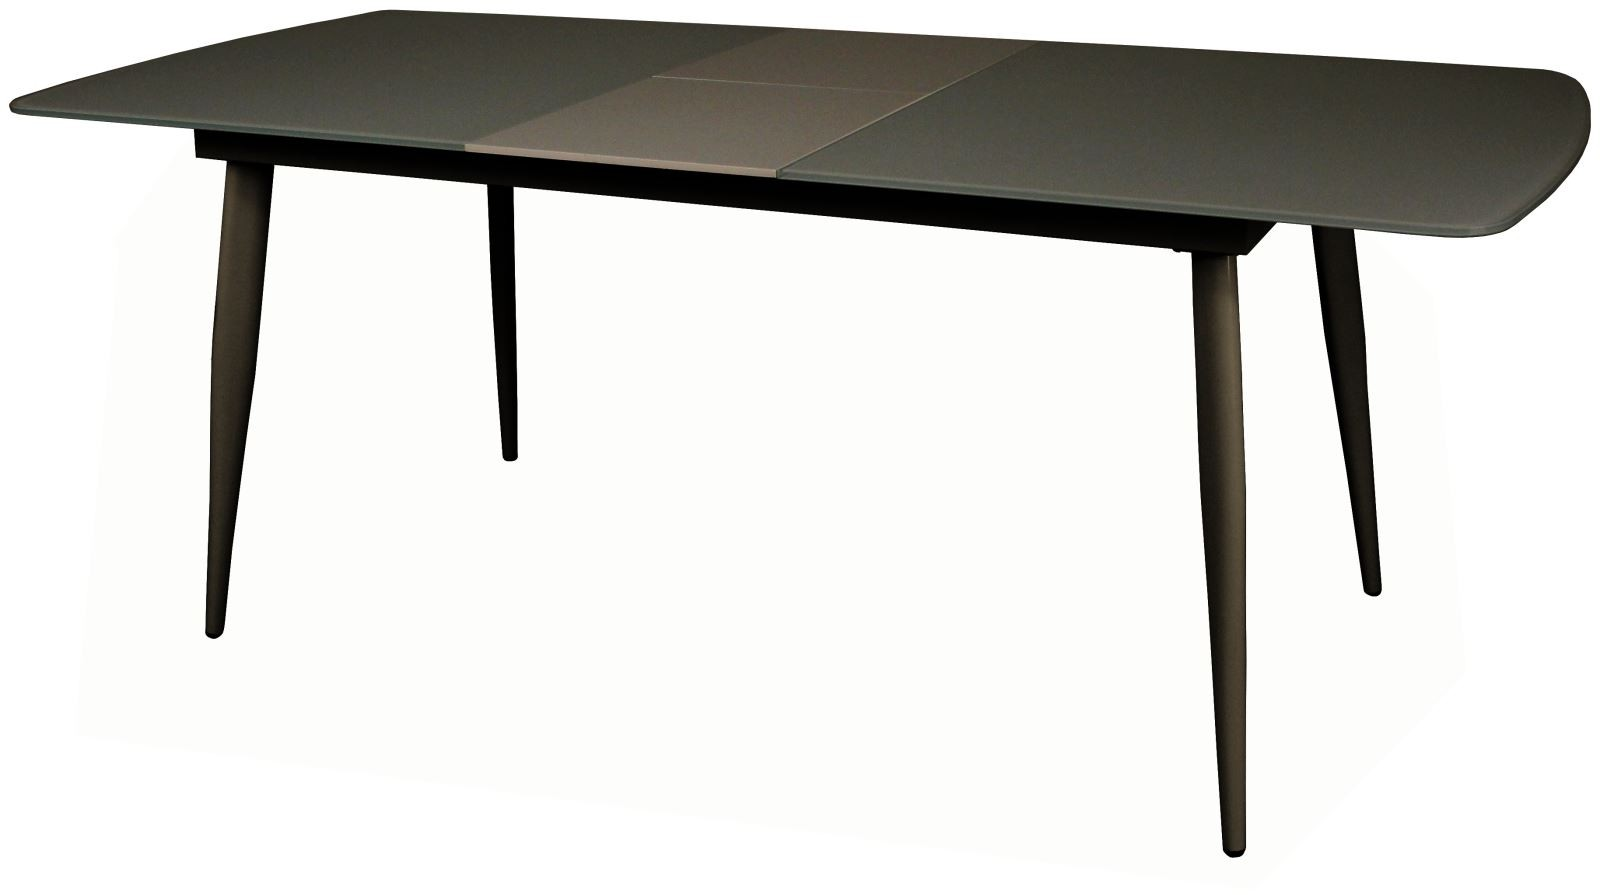 CONTEMPORARY Large Dining Table - Grey